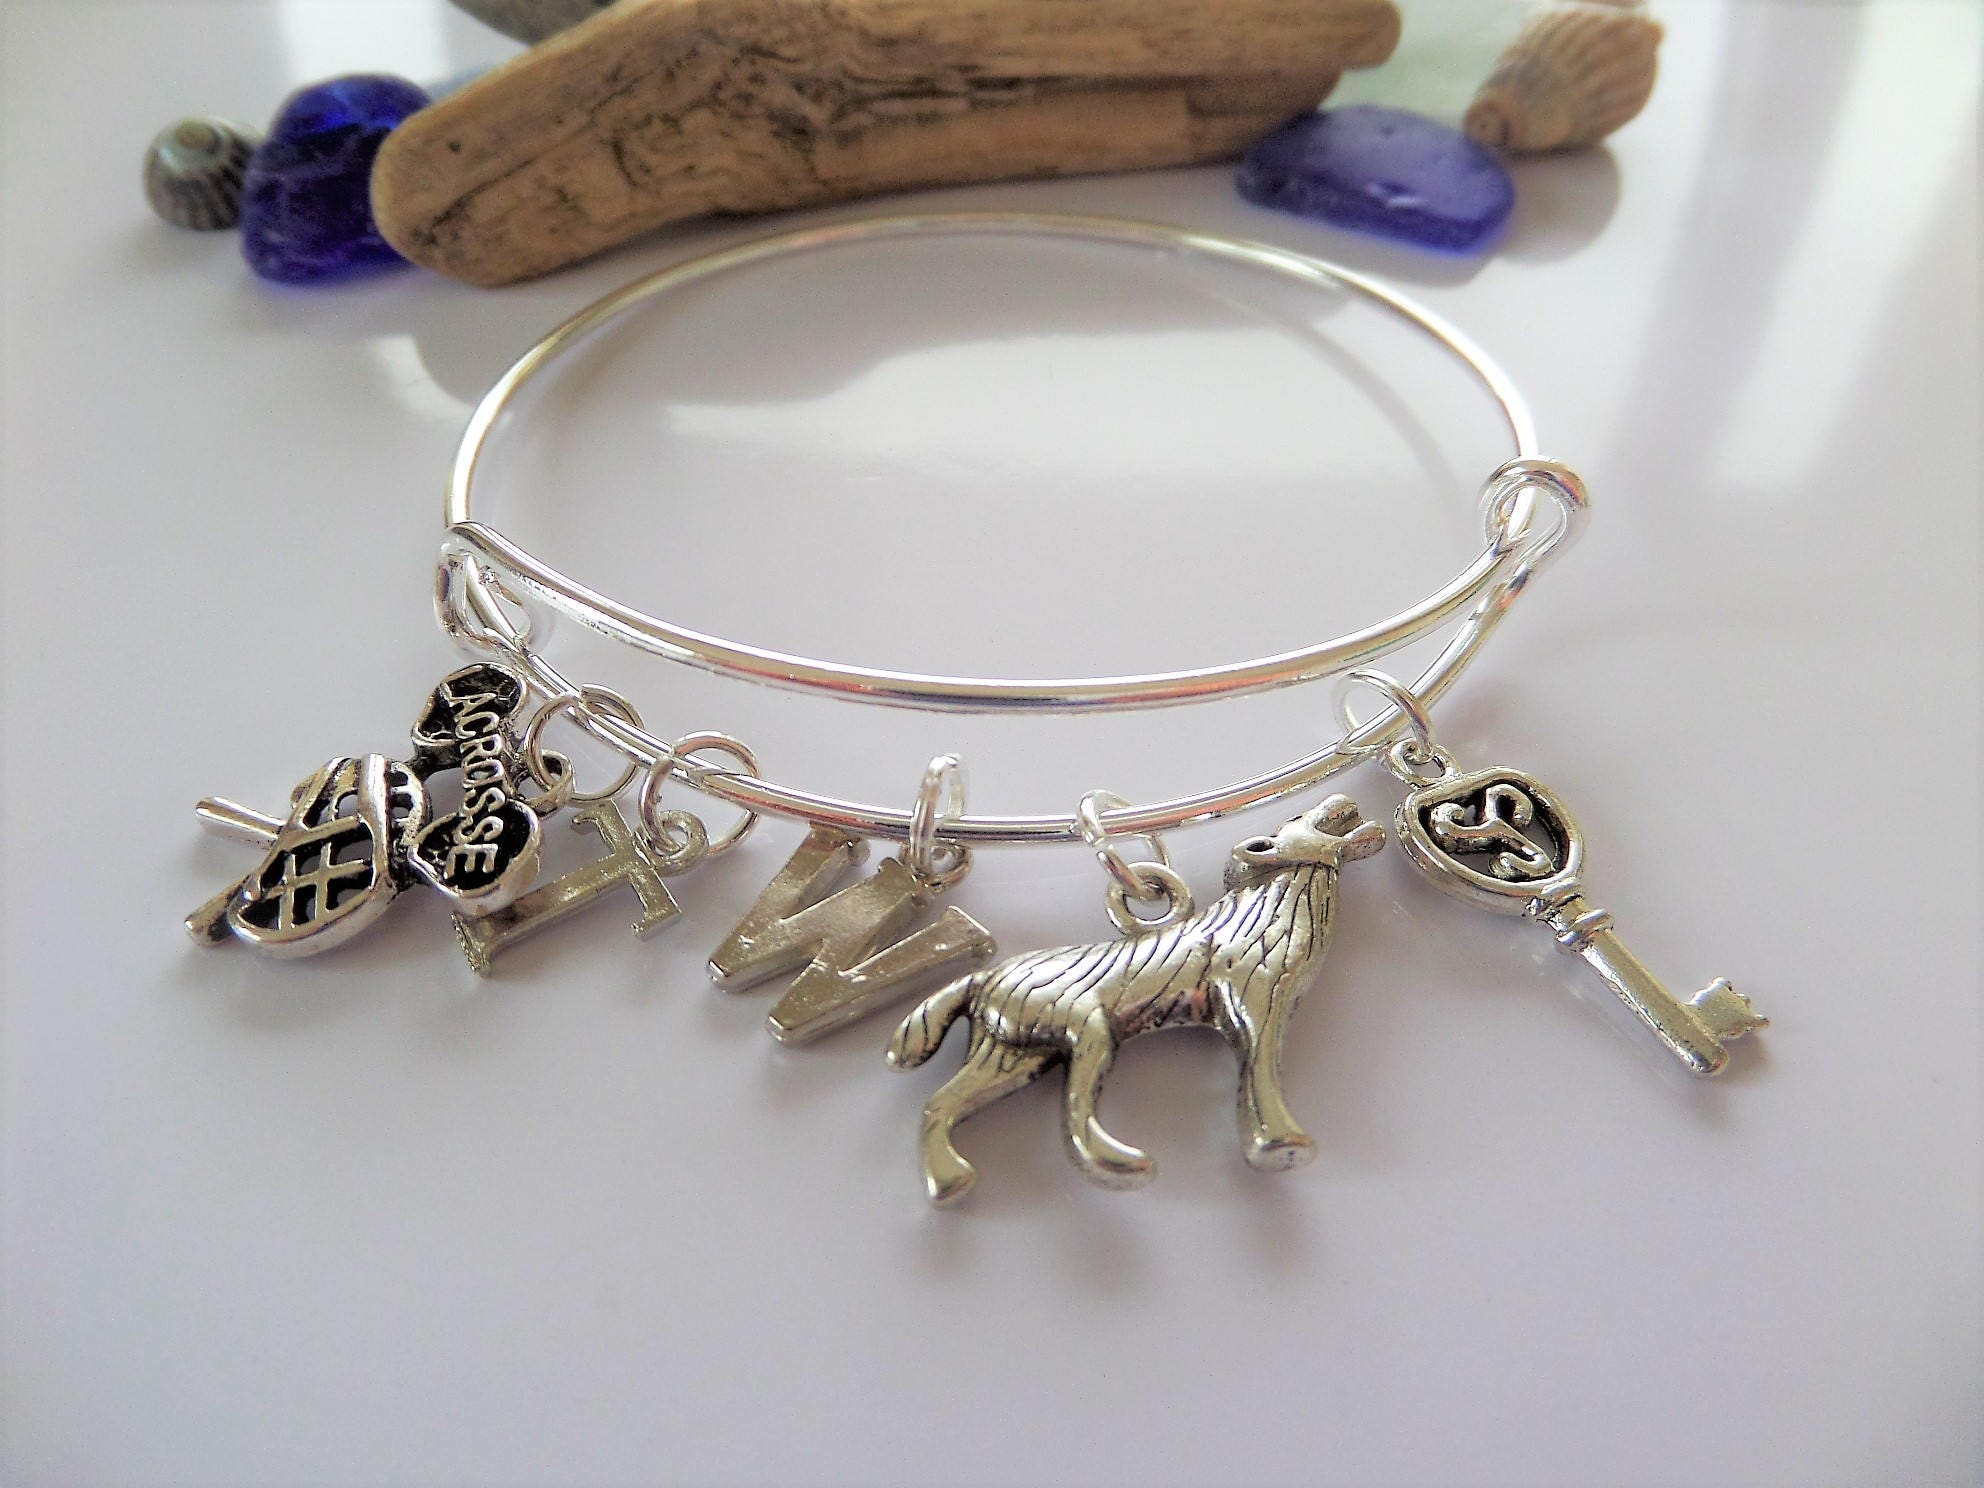 Teen Wolf inspired silver tone charm expandable bangle fan gift styles mccall lacrosse jewellery Uk